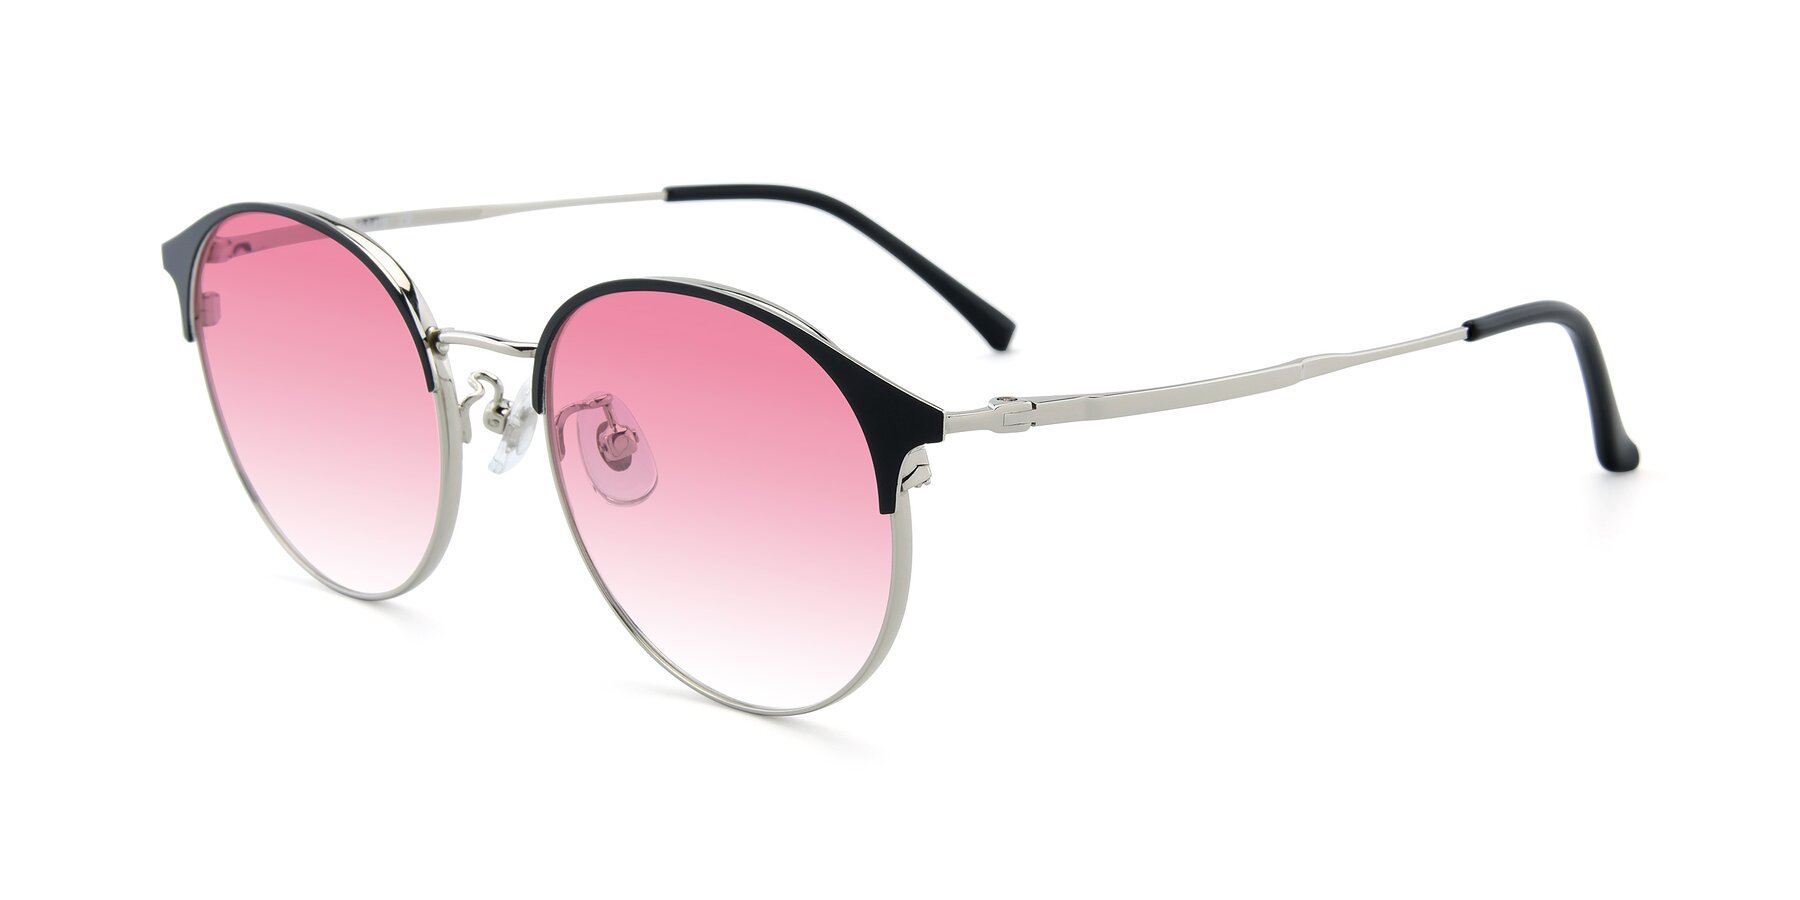 Angle of XC-8031 in Black-Silver with Pink Gradient Lenses